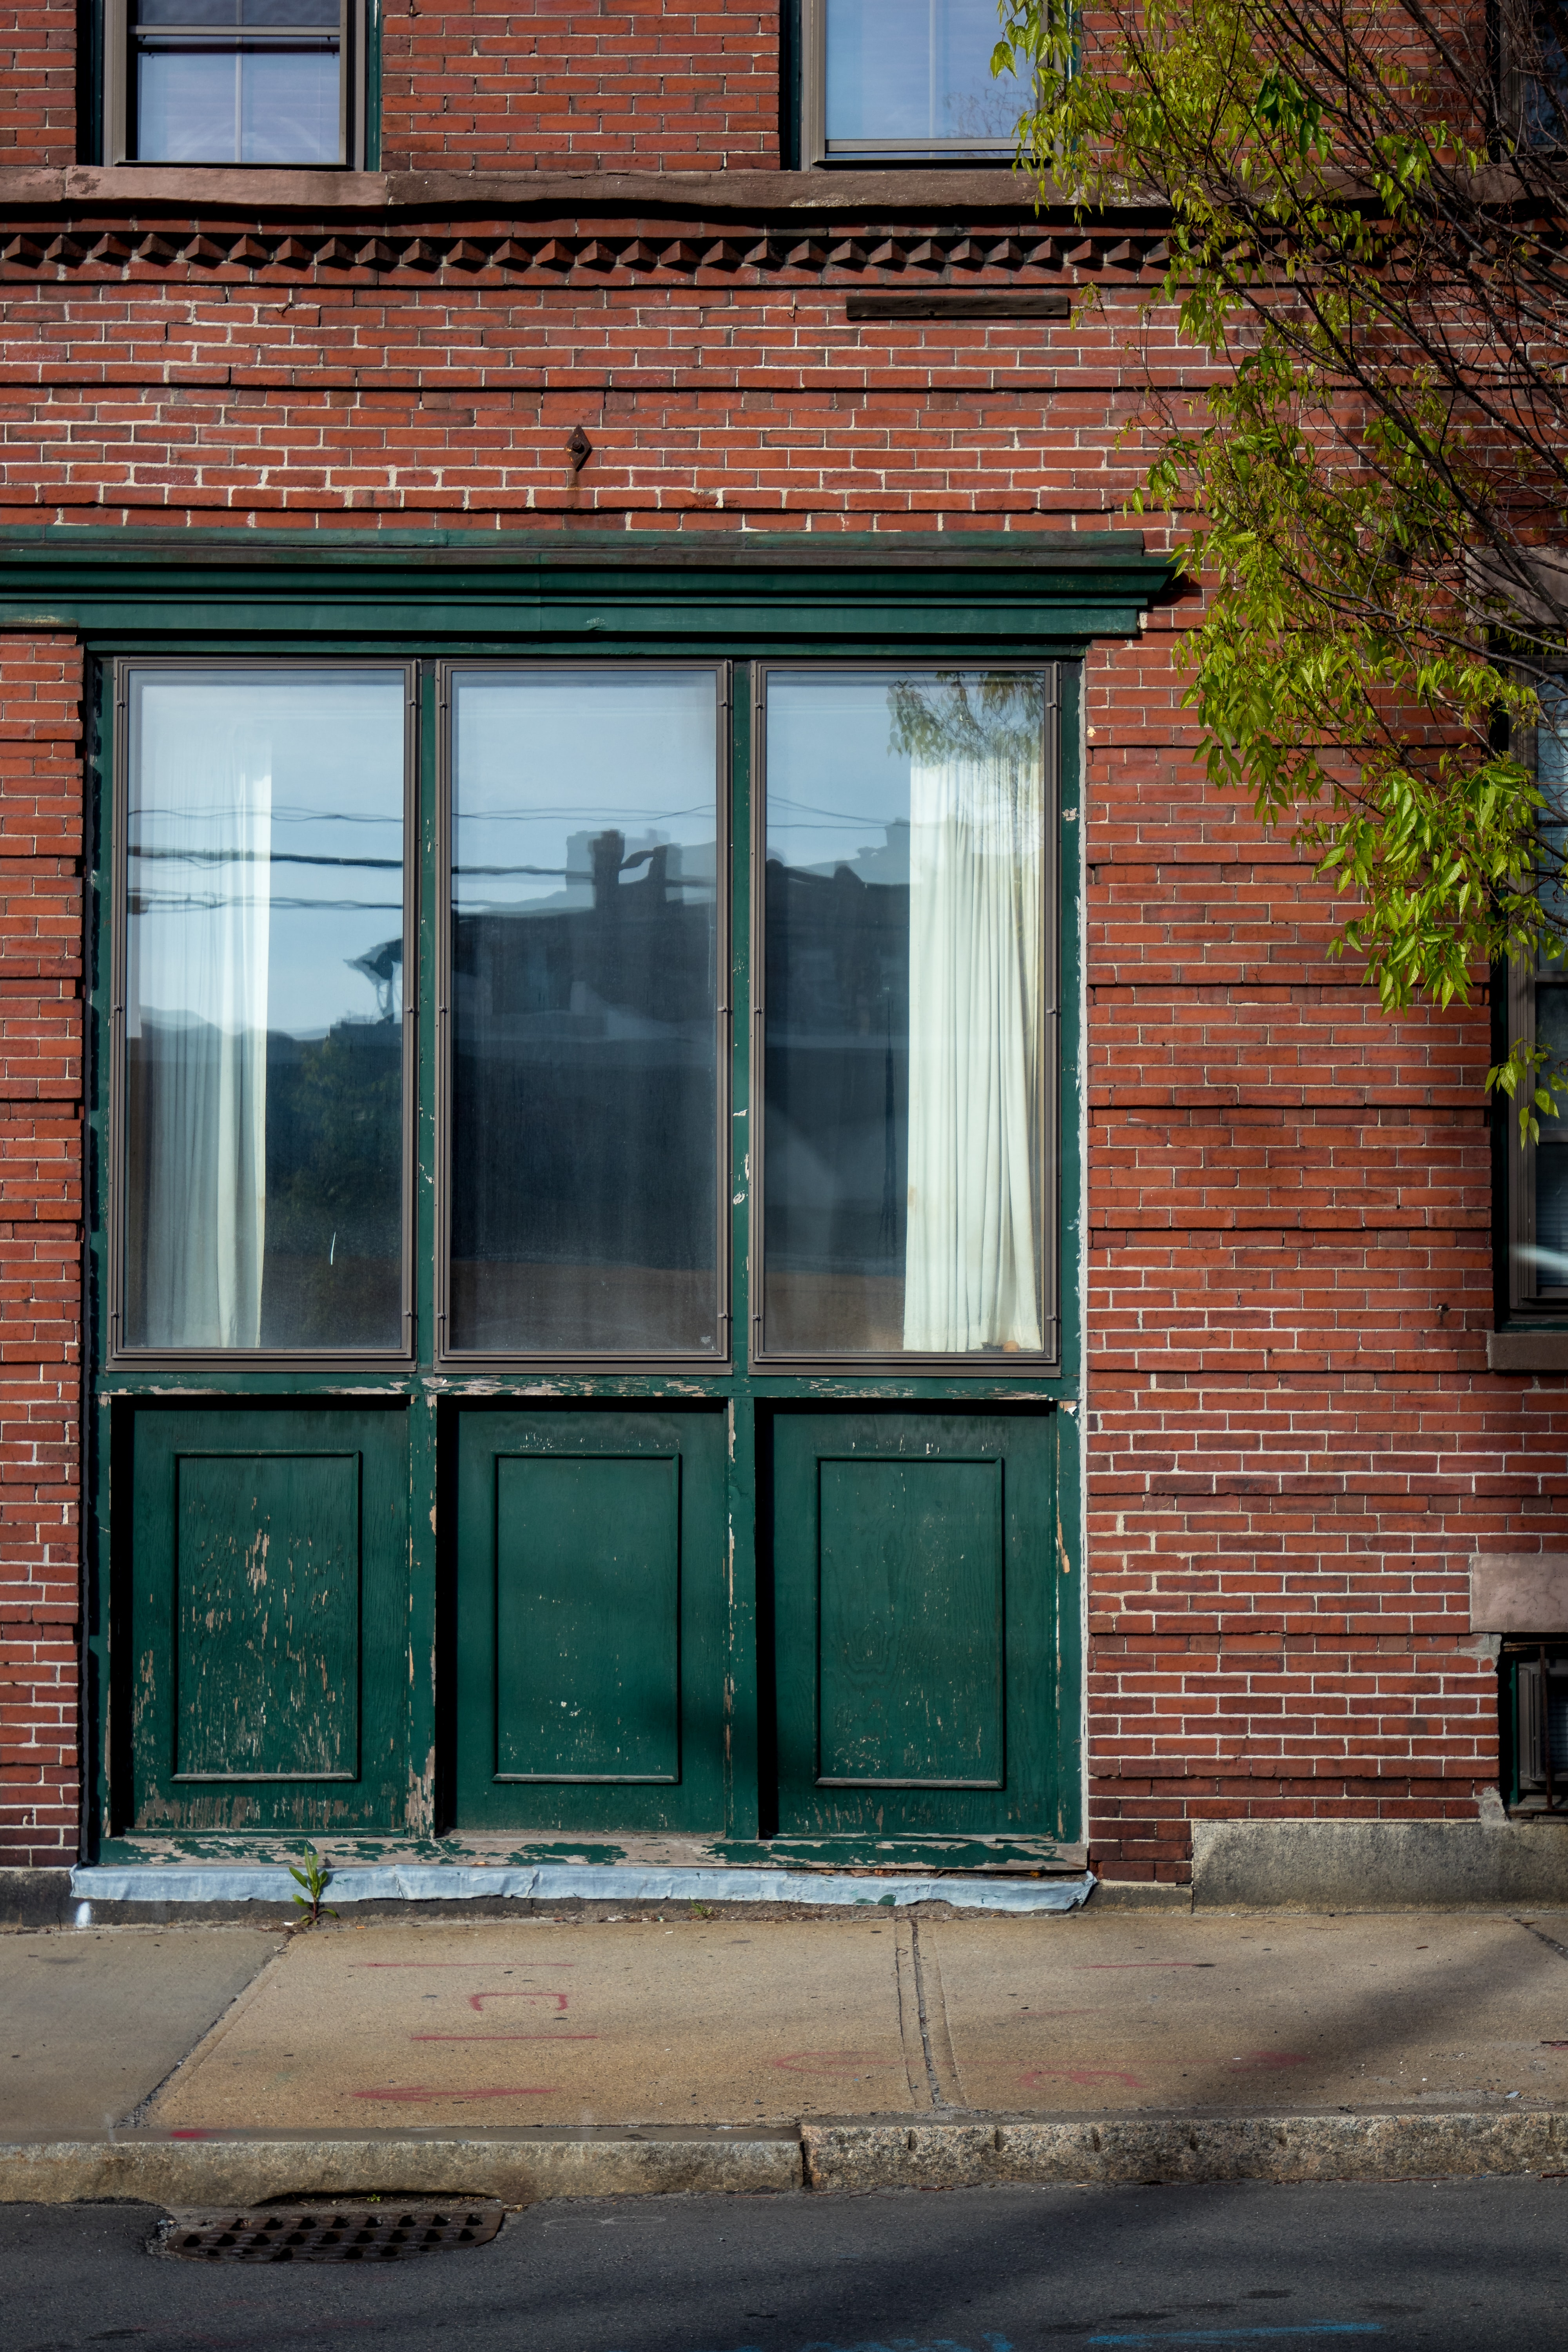 closed glass window with brick wall